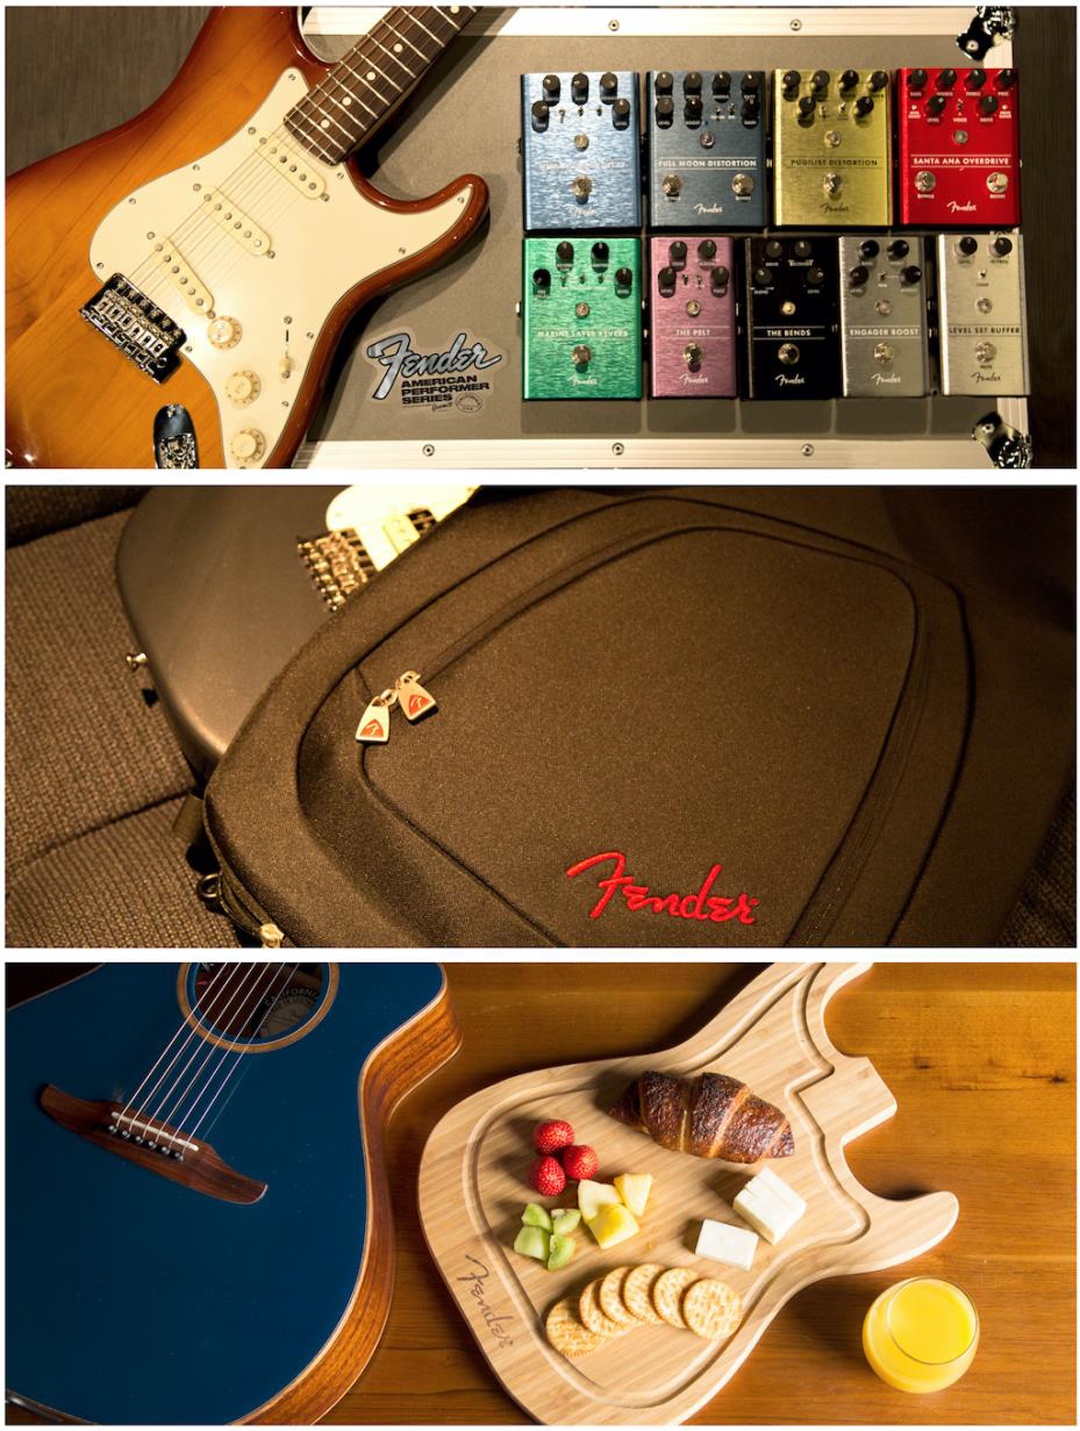 FENDER THE SPRING-SUMMER 2019 CAMPAIGN